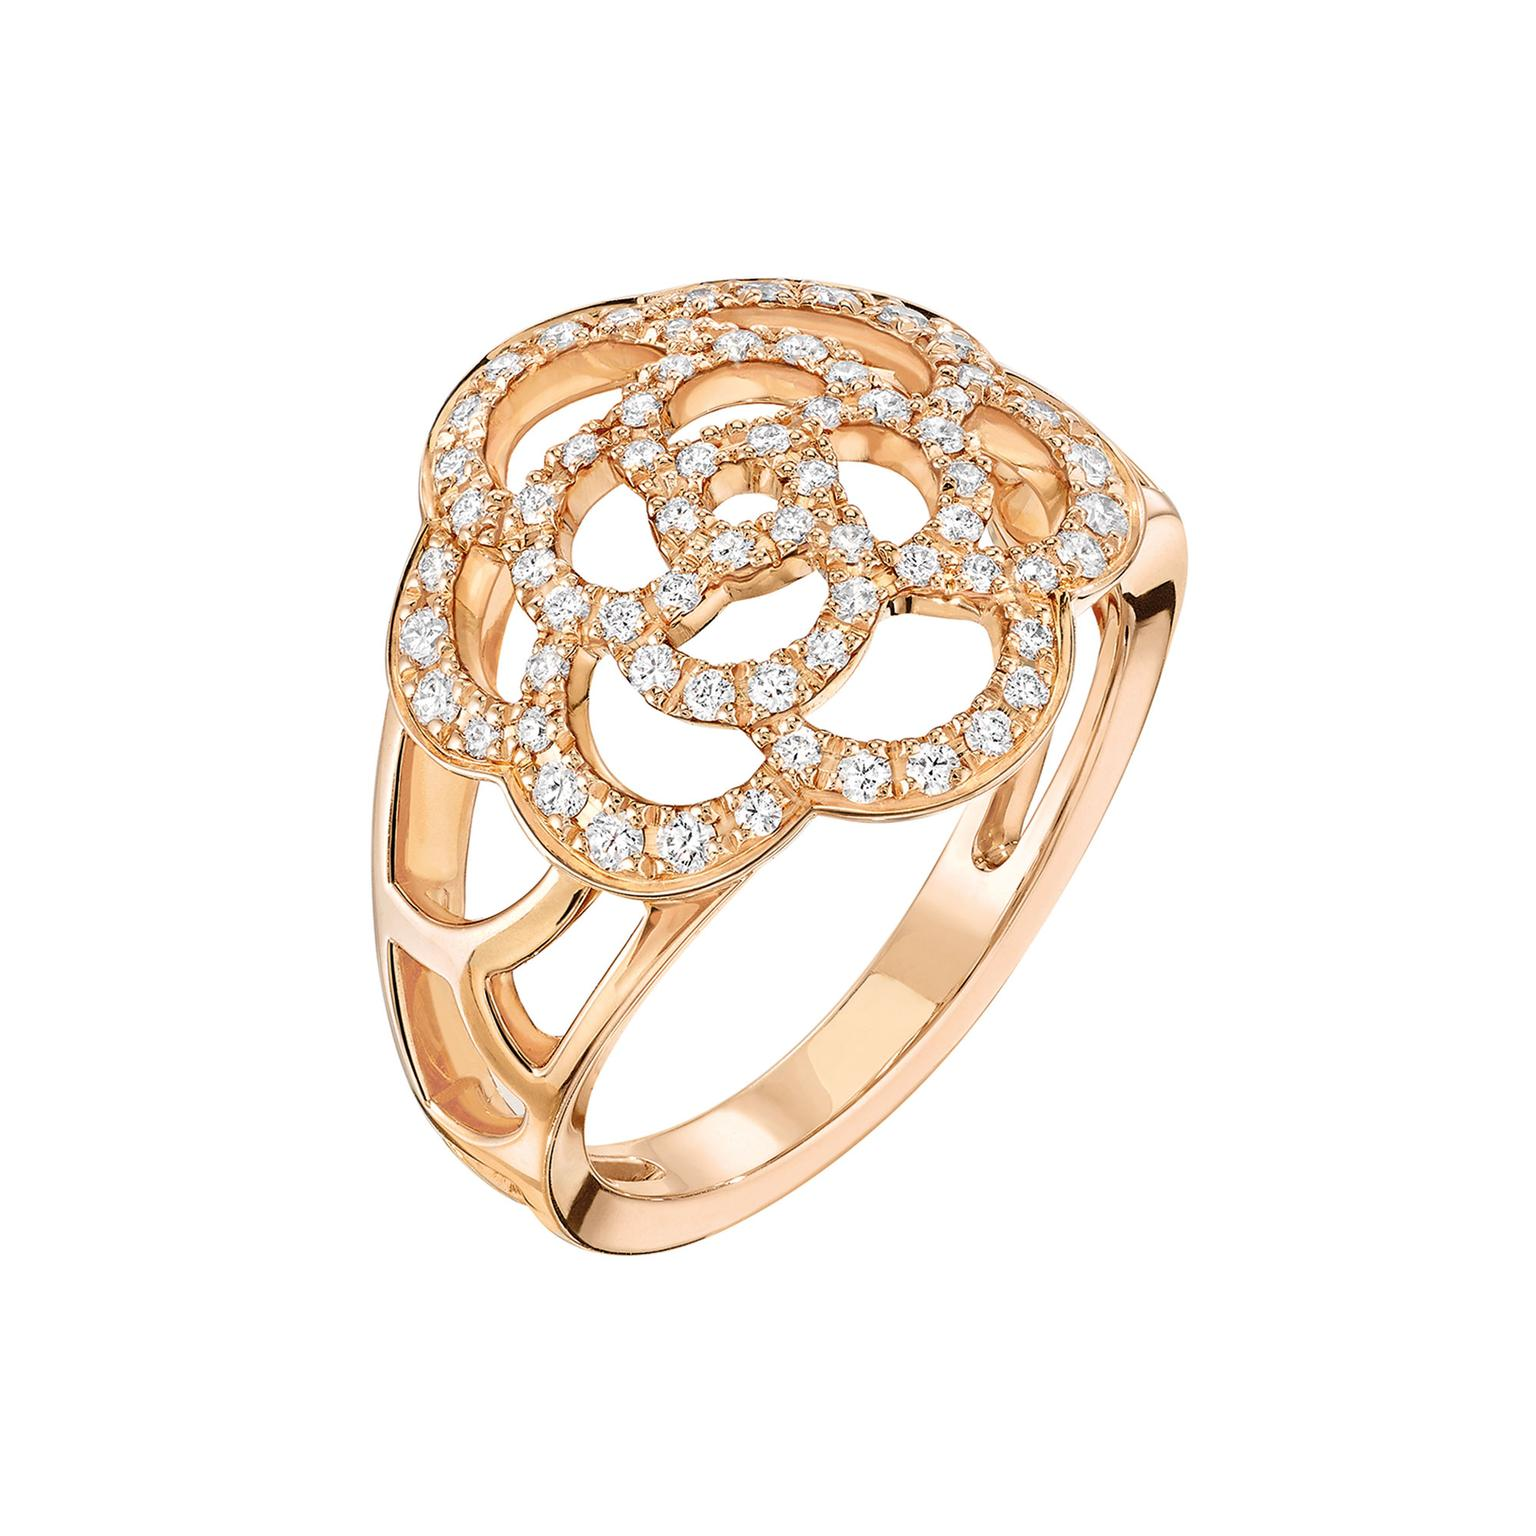 camélia ring in rose gold and diamonds chanel